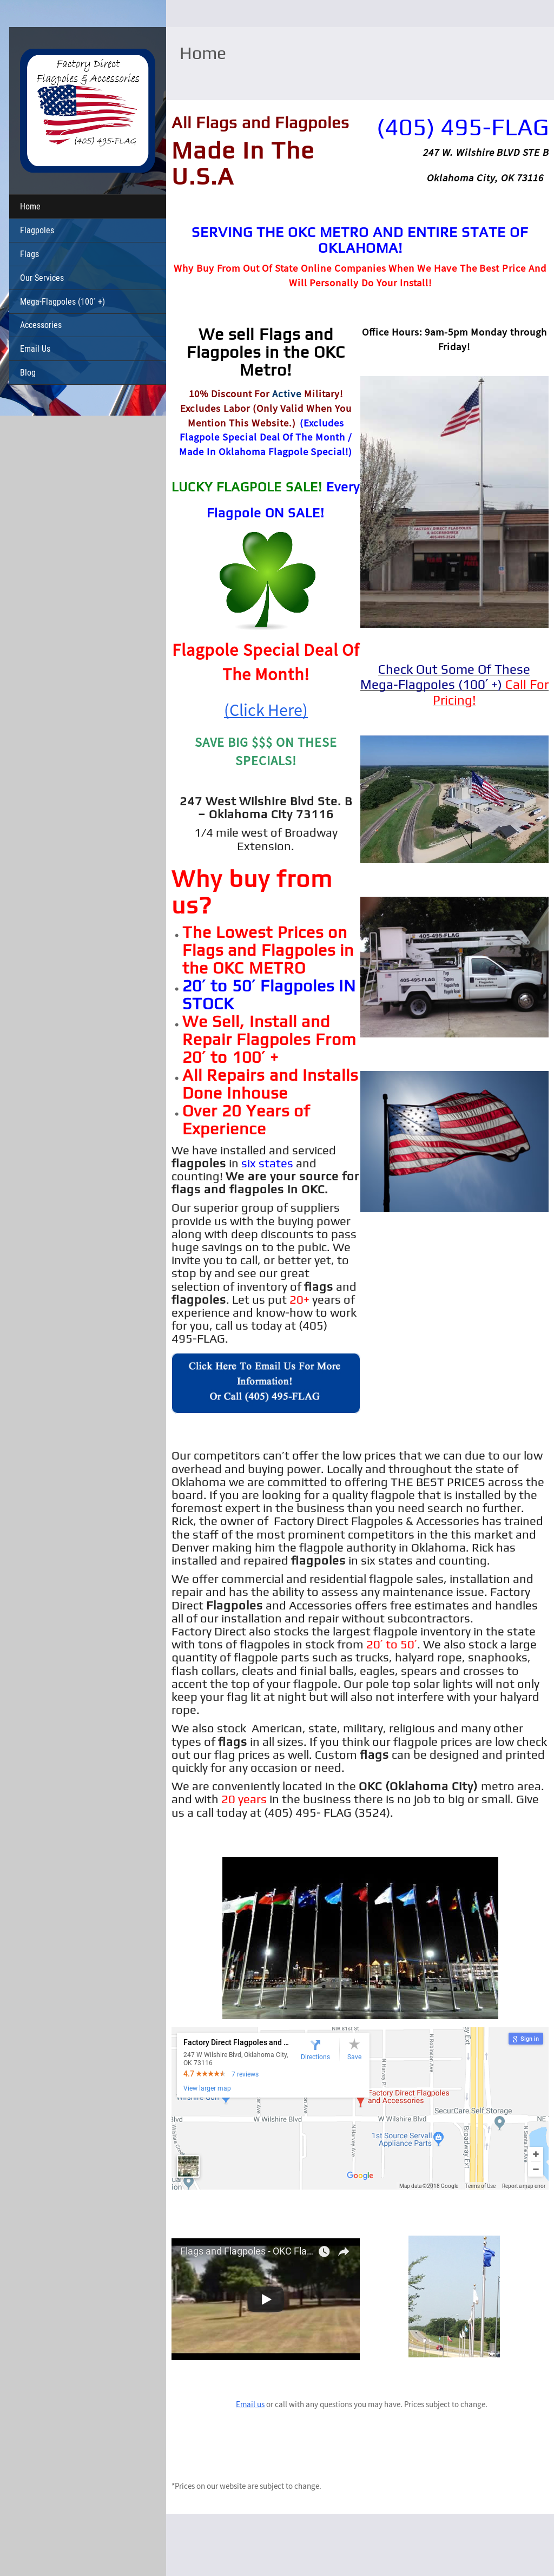 Factory Direct Flagpoles & Accessories Competitors, Revenue and